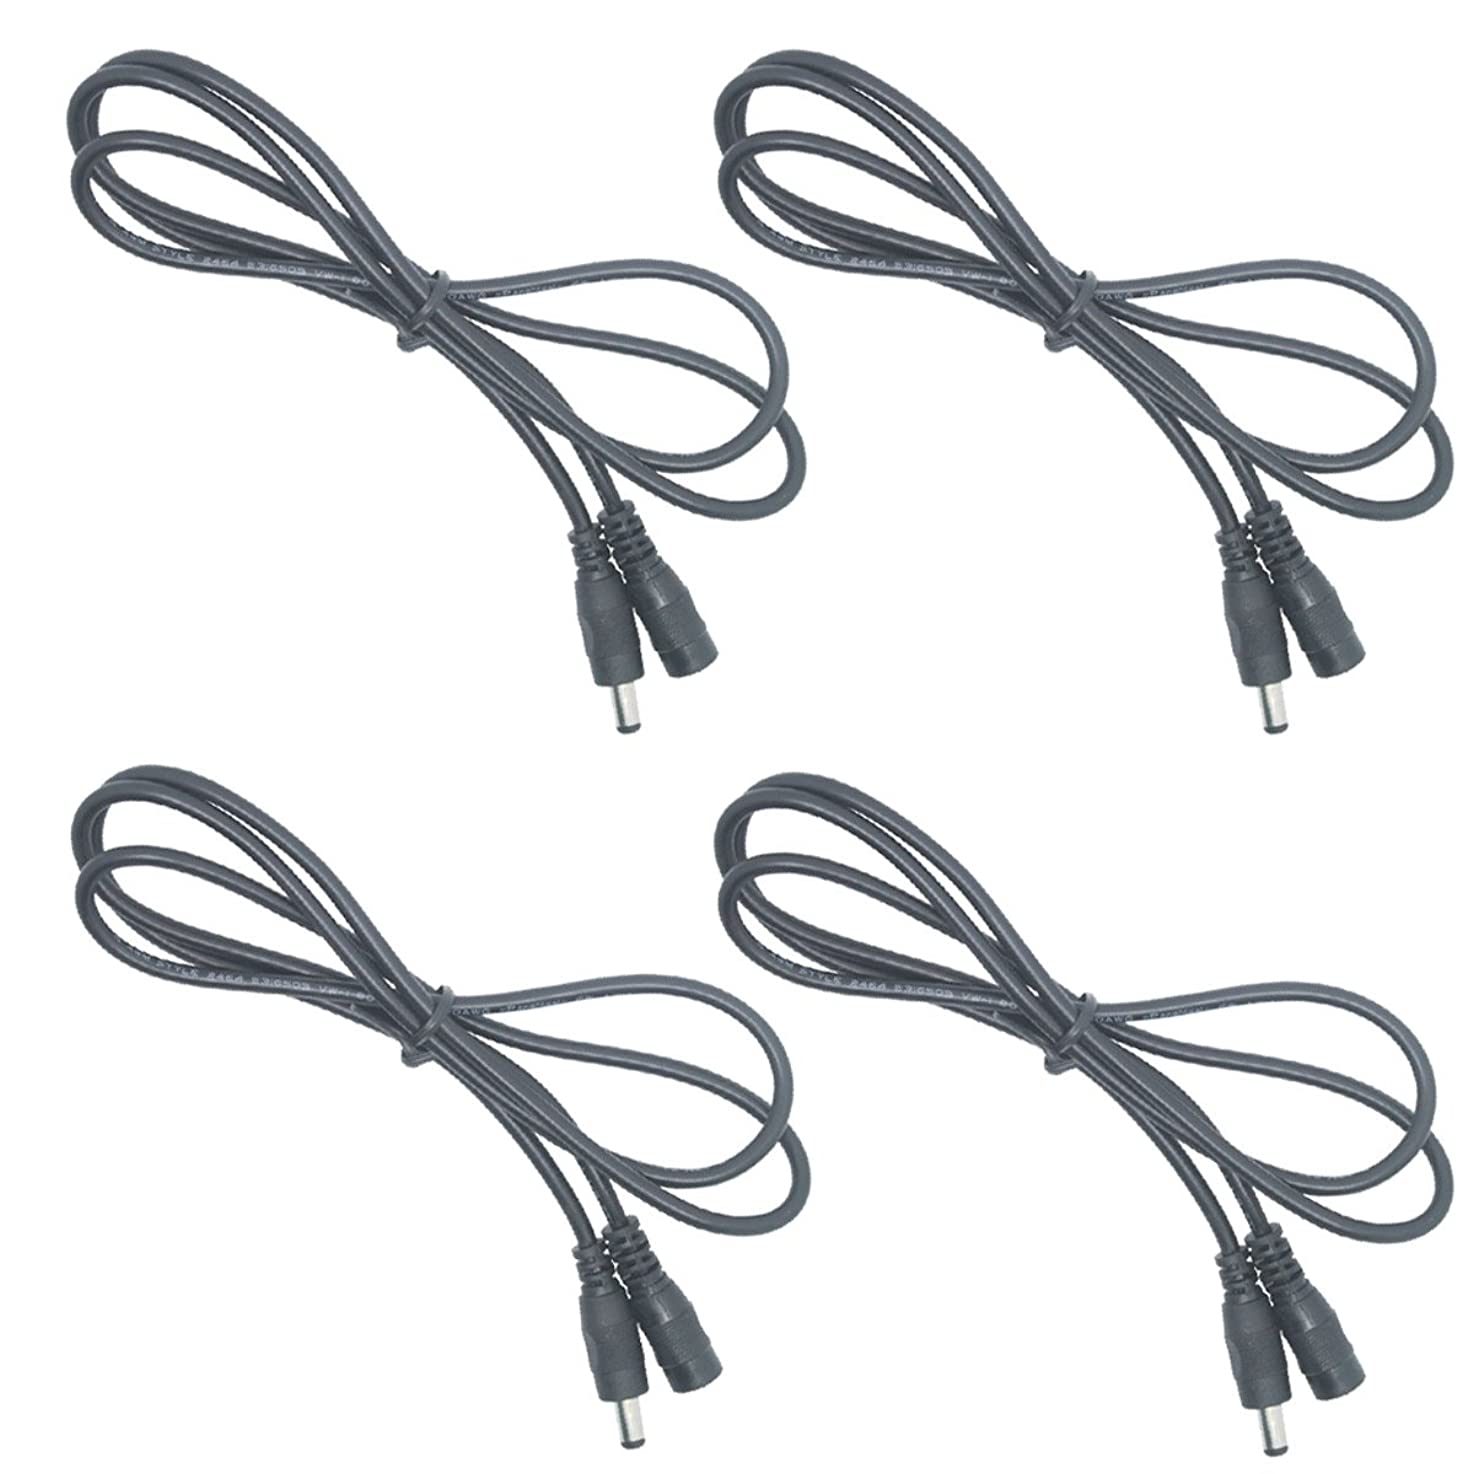 Litever Extension Cable 20 awg 3.3 ft/1Meter, 5.5mm x 2.1mm DC Plugs, Male to Female, for Power Adaptor for 5~24VDC LED Light Strips, CCTV; Copper Core Extension jumper Cord-[4-Pack] espxywdreymdu7